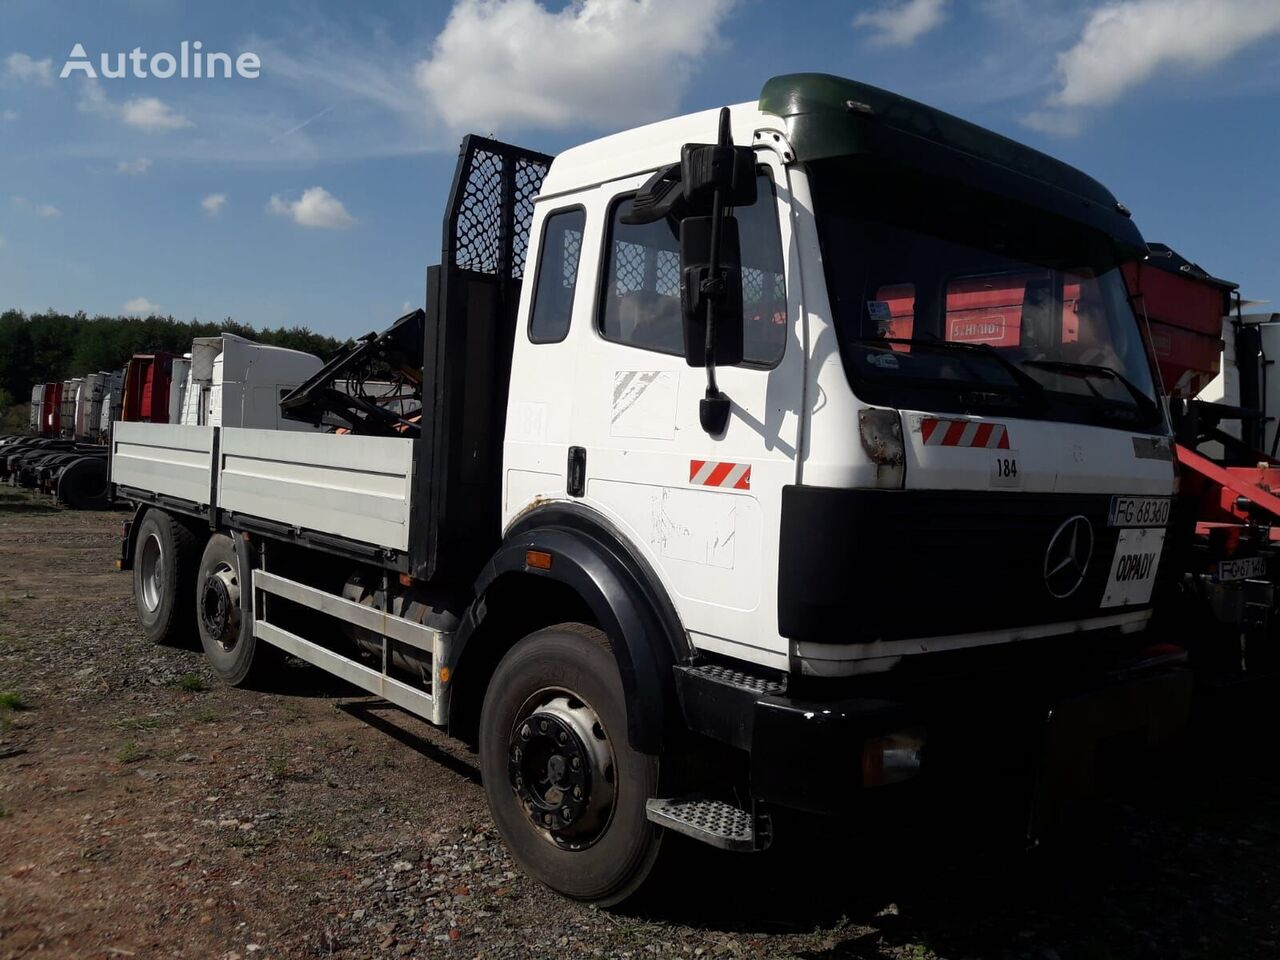 MERCEDES-BENZ 2531 SK, MANUAL V6 TURBO flatbed truck